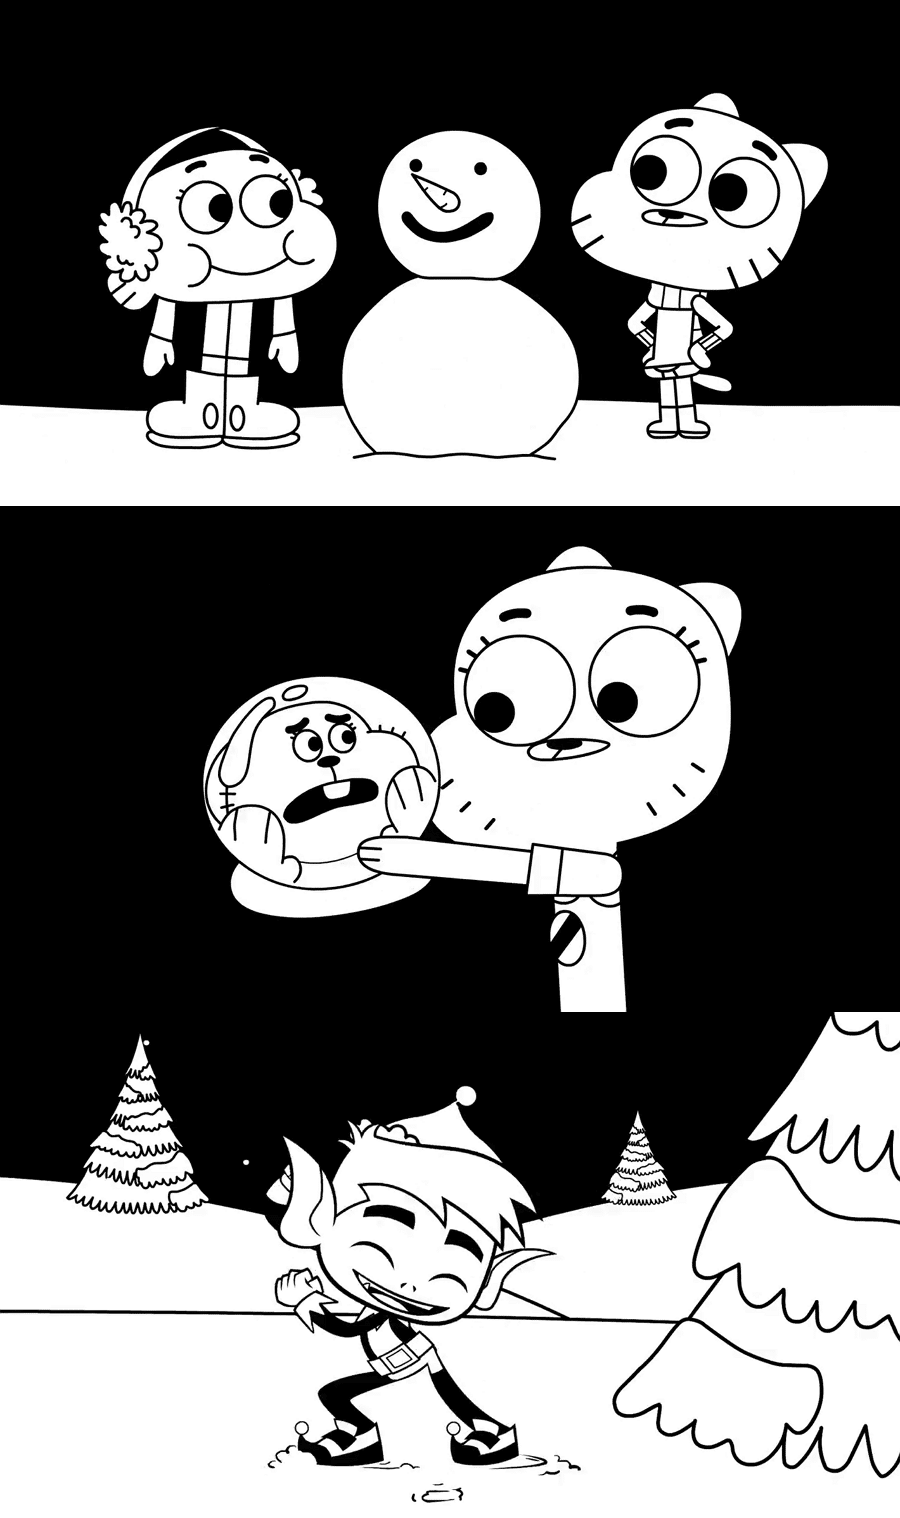 Cartoon Network USA Christmas Colouring Book Mashup